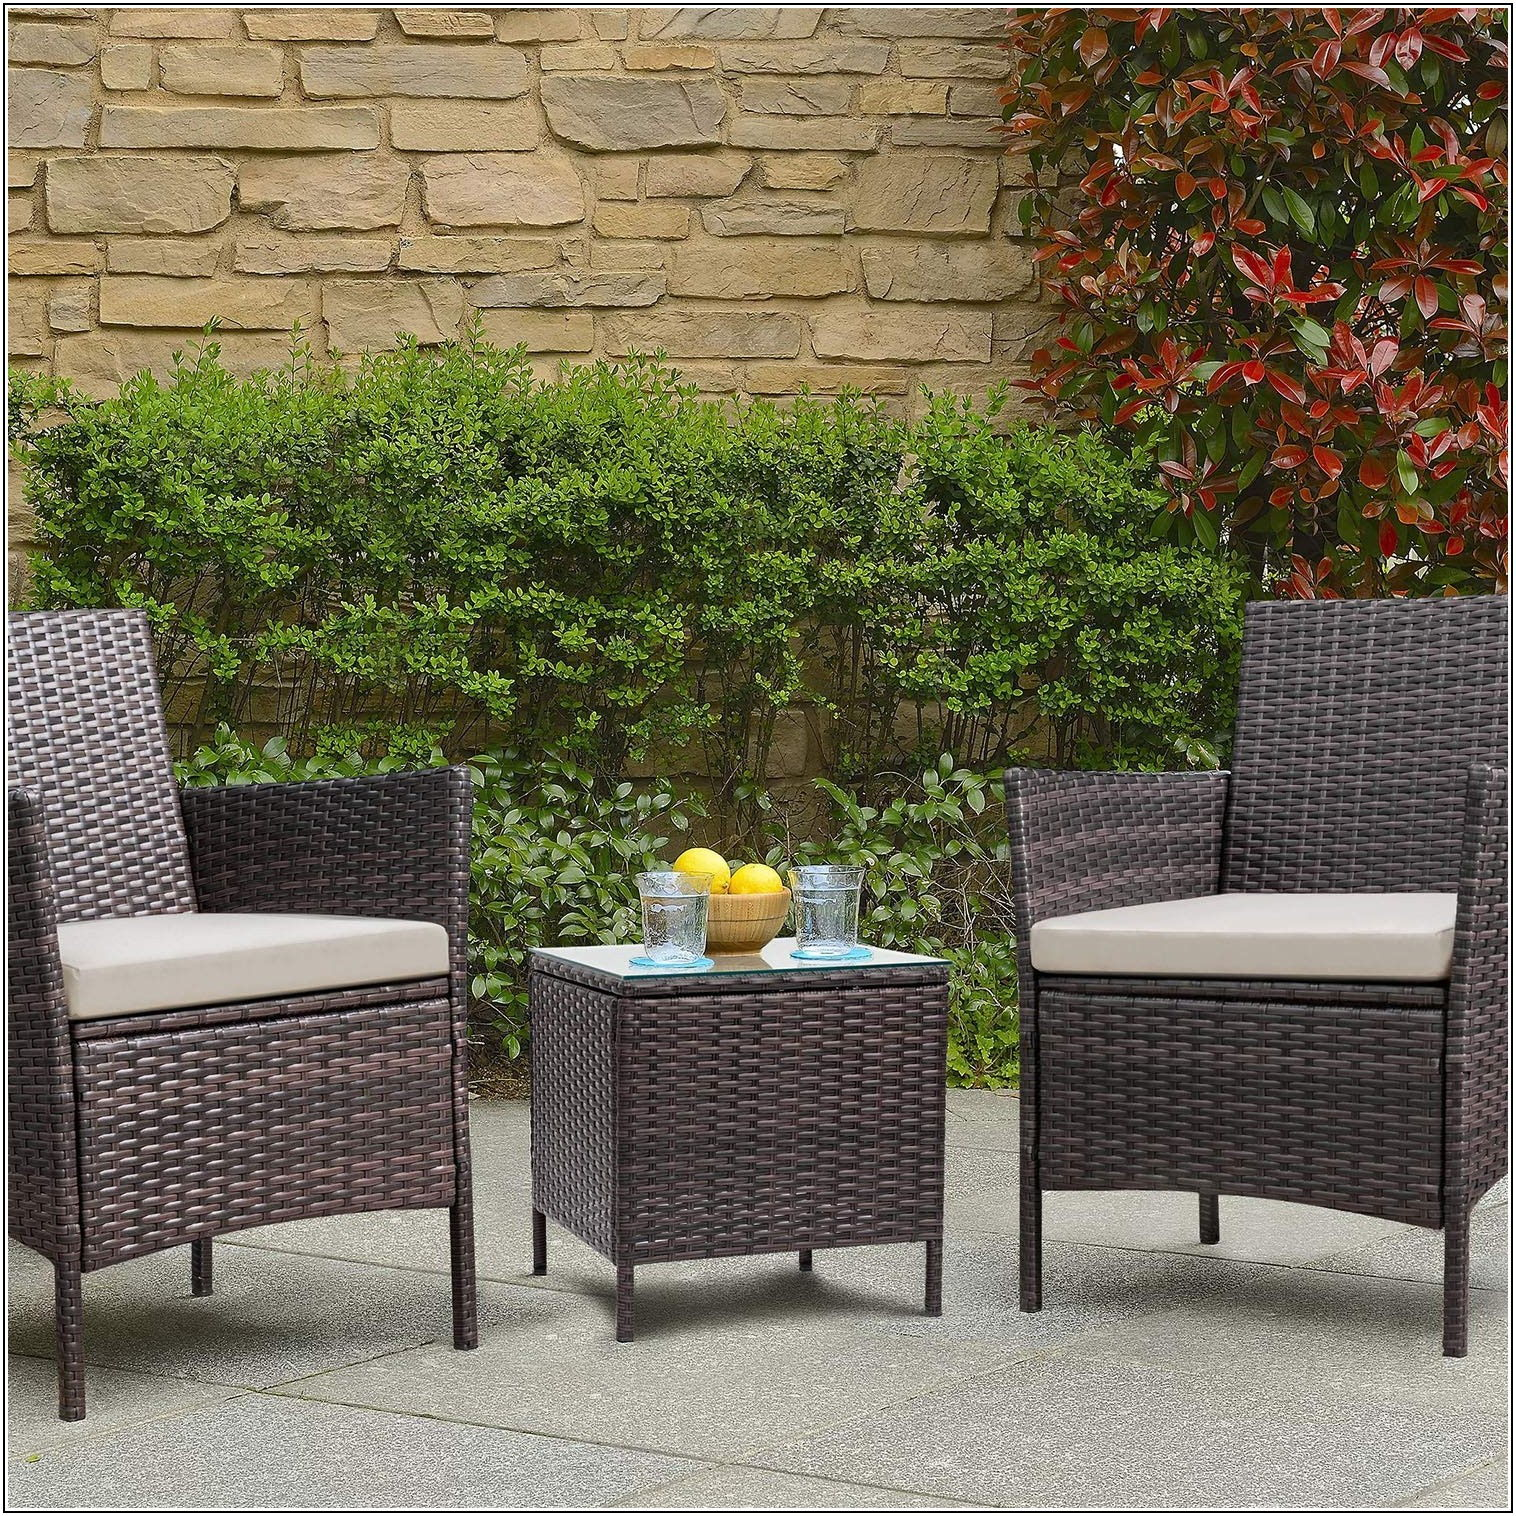 Wicker Patio Cushion Sets